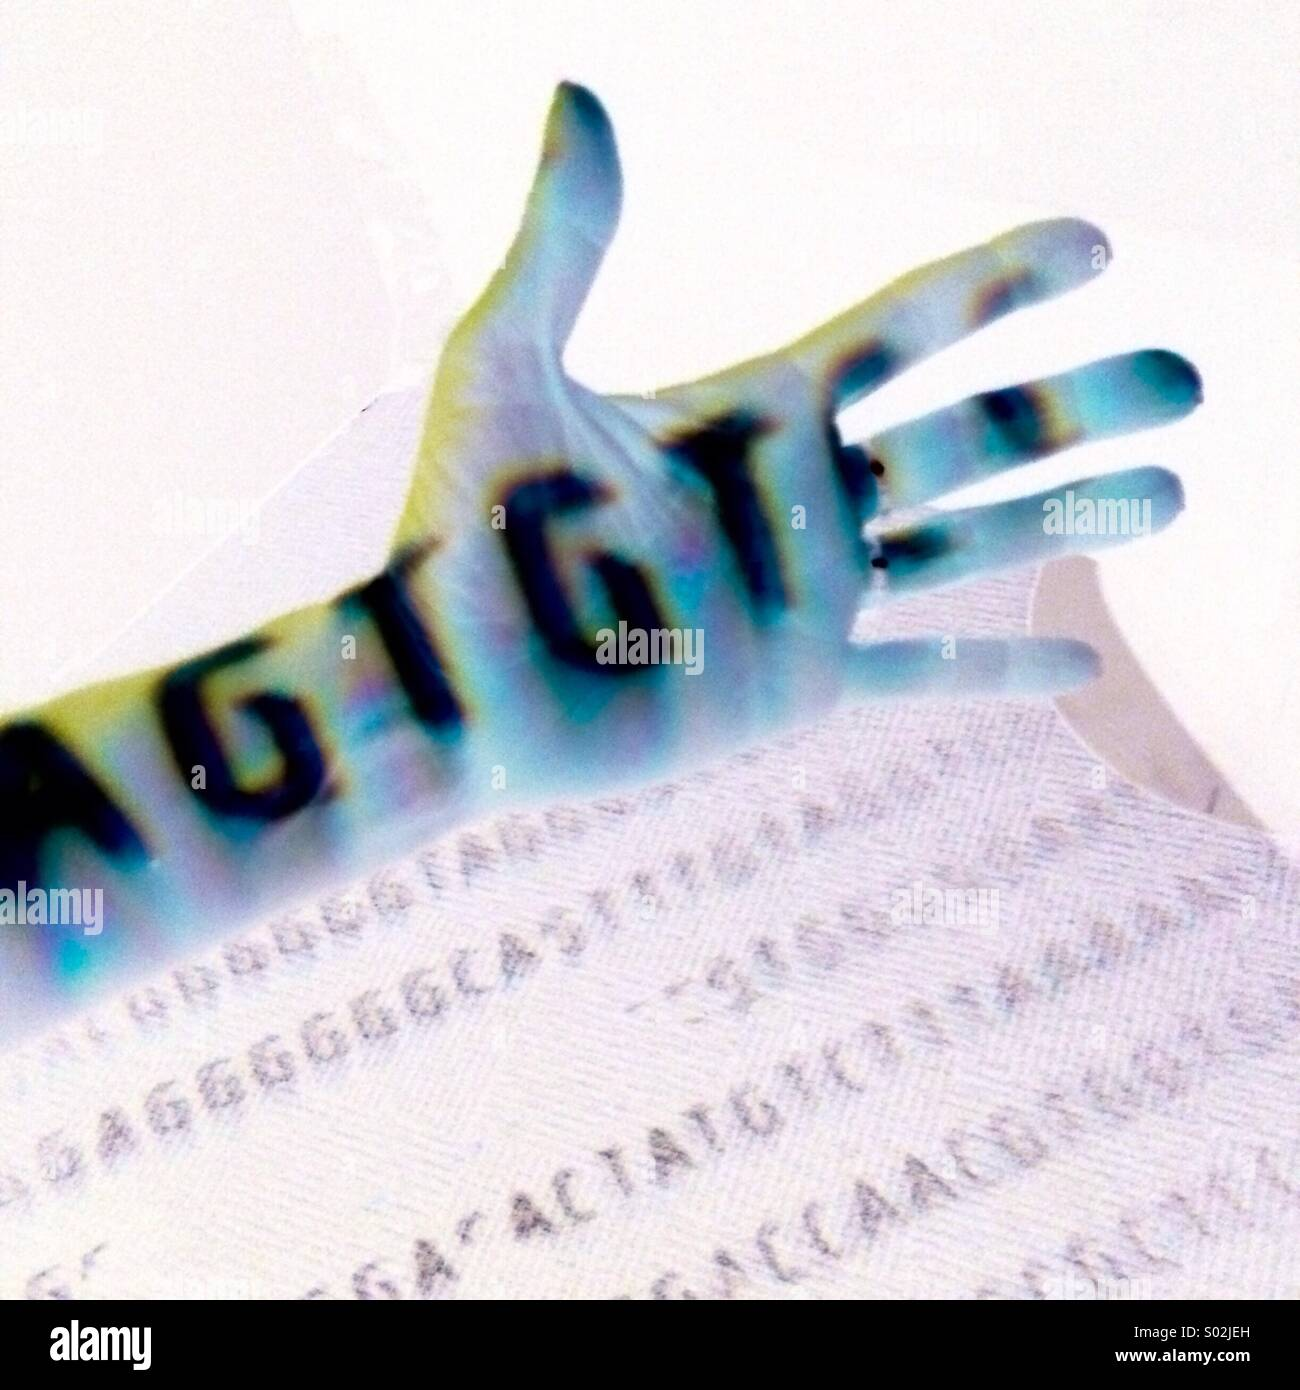 Dna sequence on hand - Stock Image